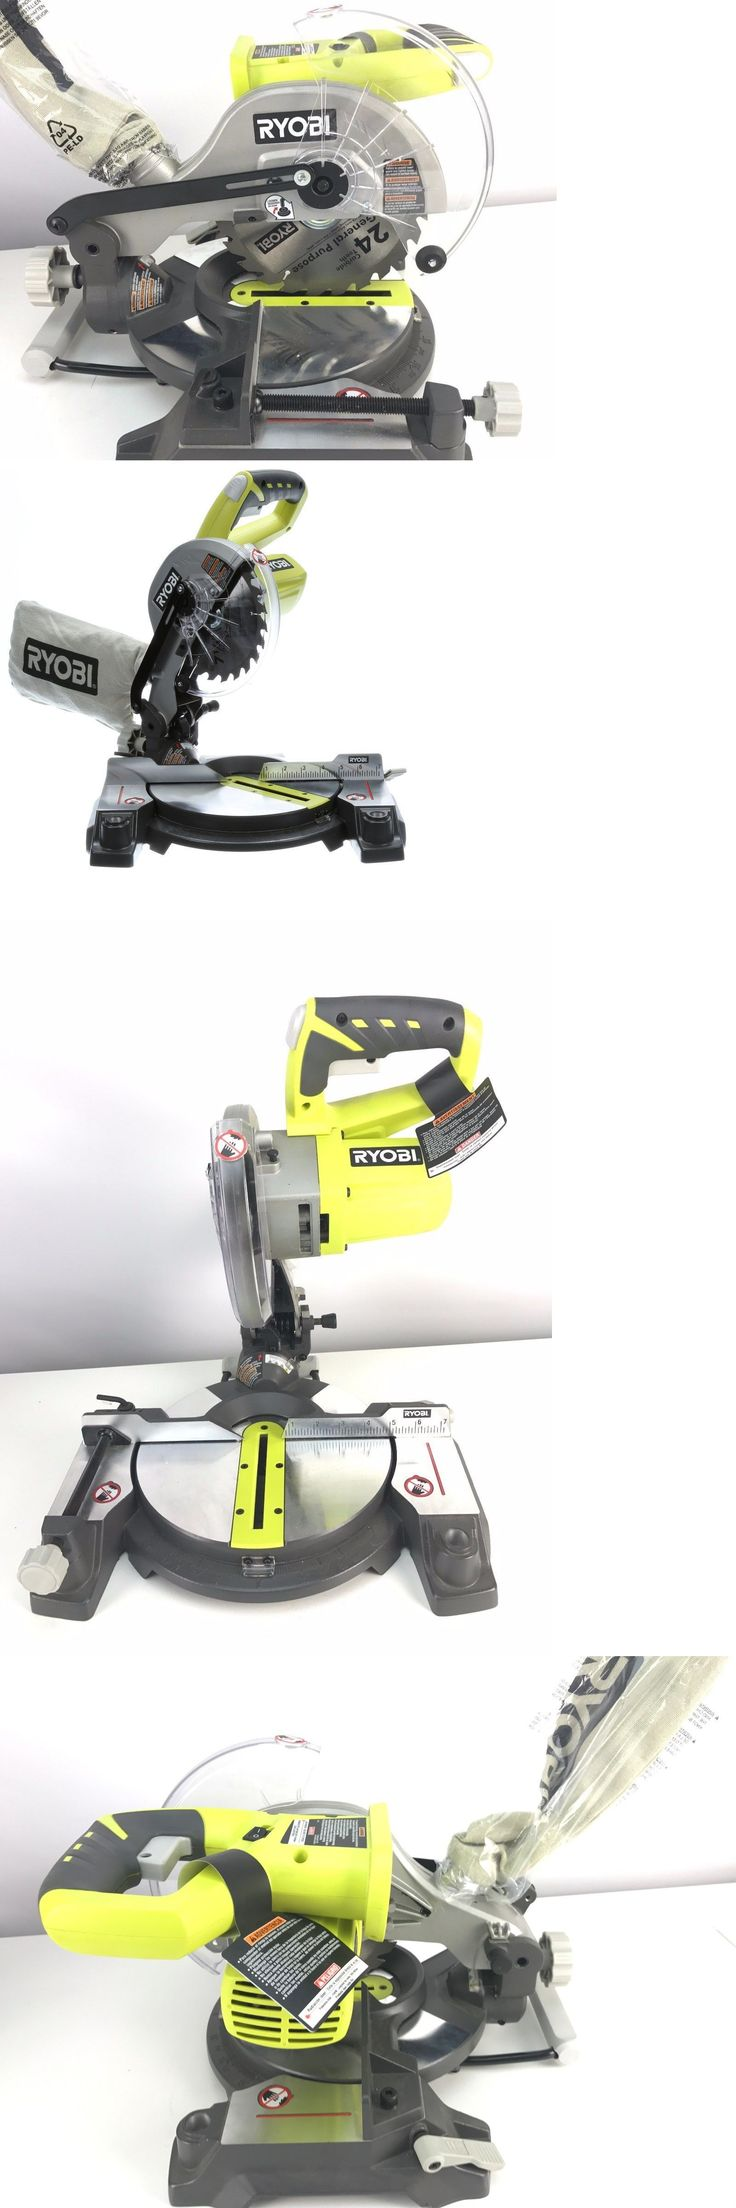 Miter and Chop Saws 20787: Ryobi 18-Volt One+ 7-1 4 In. Cordless Miter Saw - P551 Tool Only -> BUY IT NOW ONLY: $119.99 on eBay!